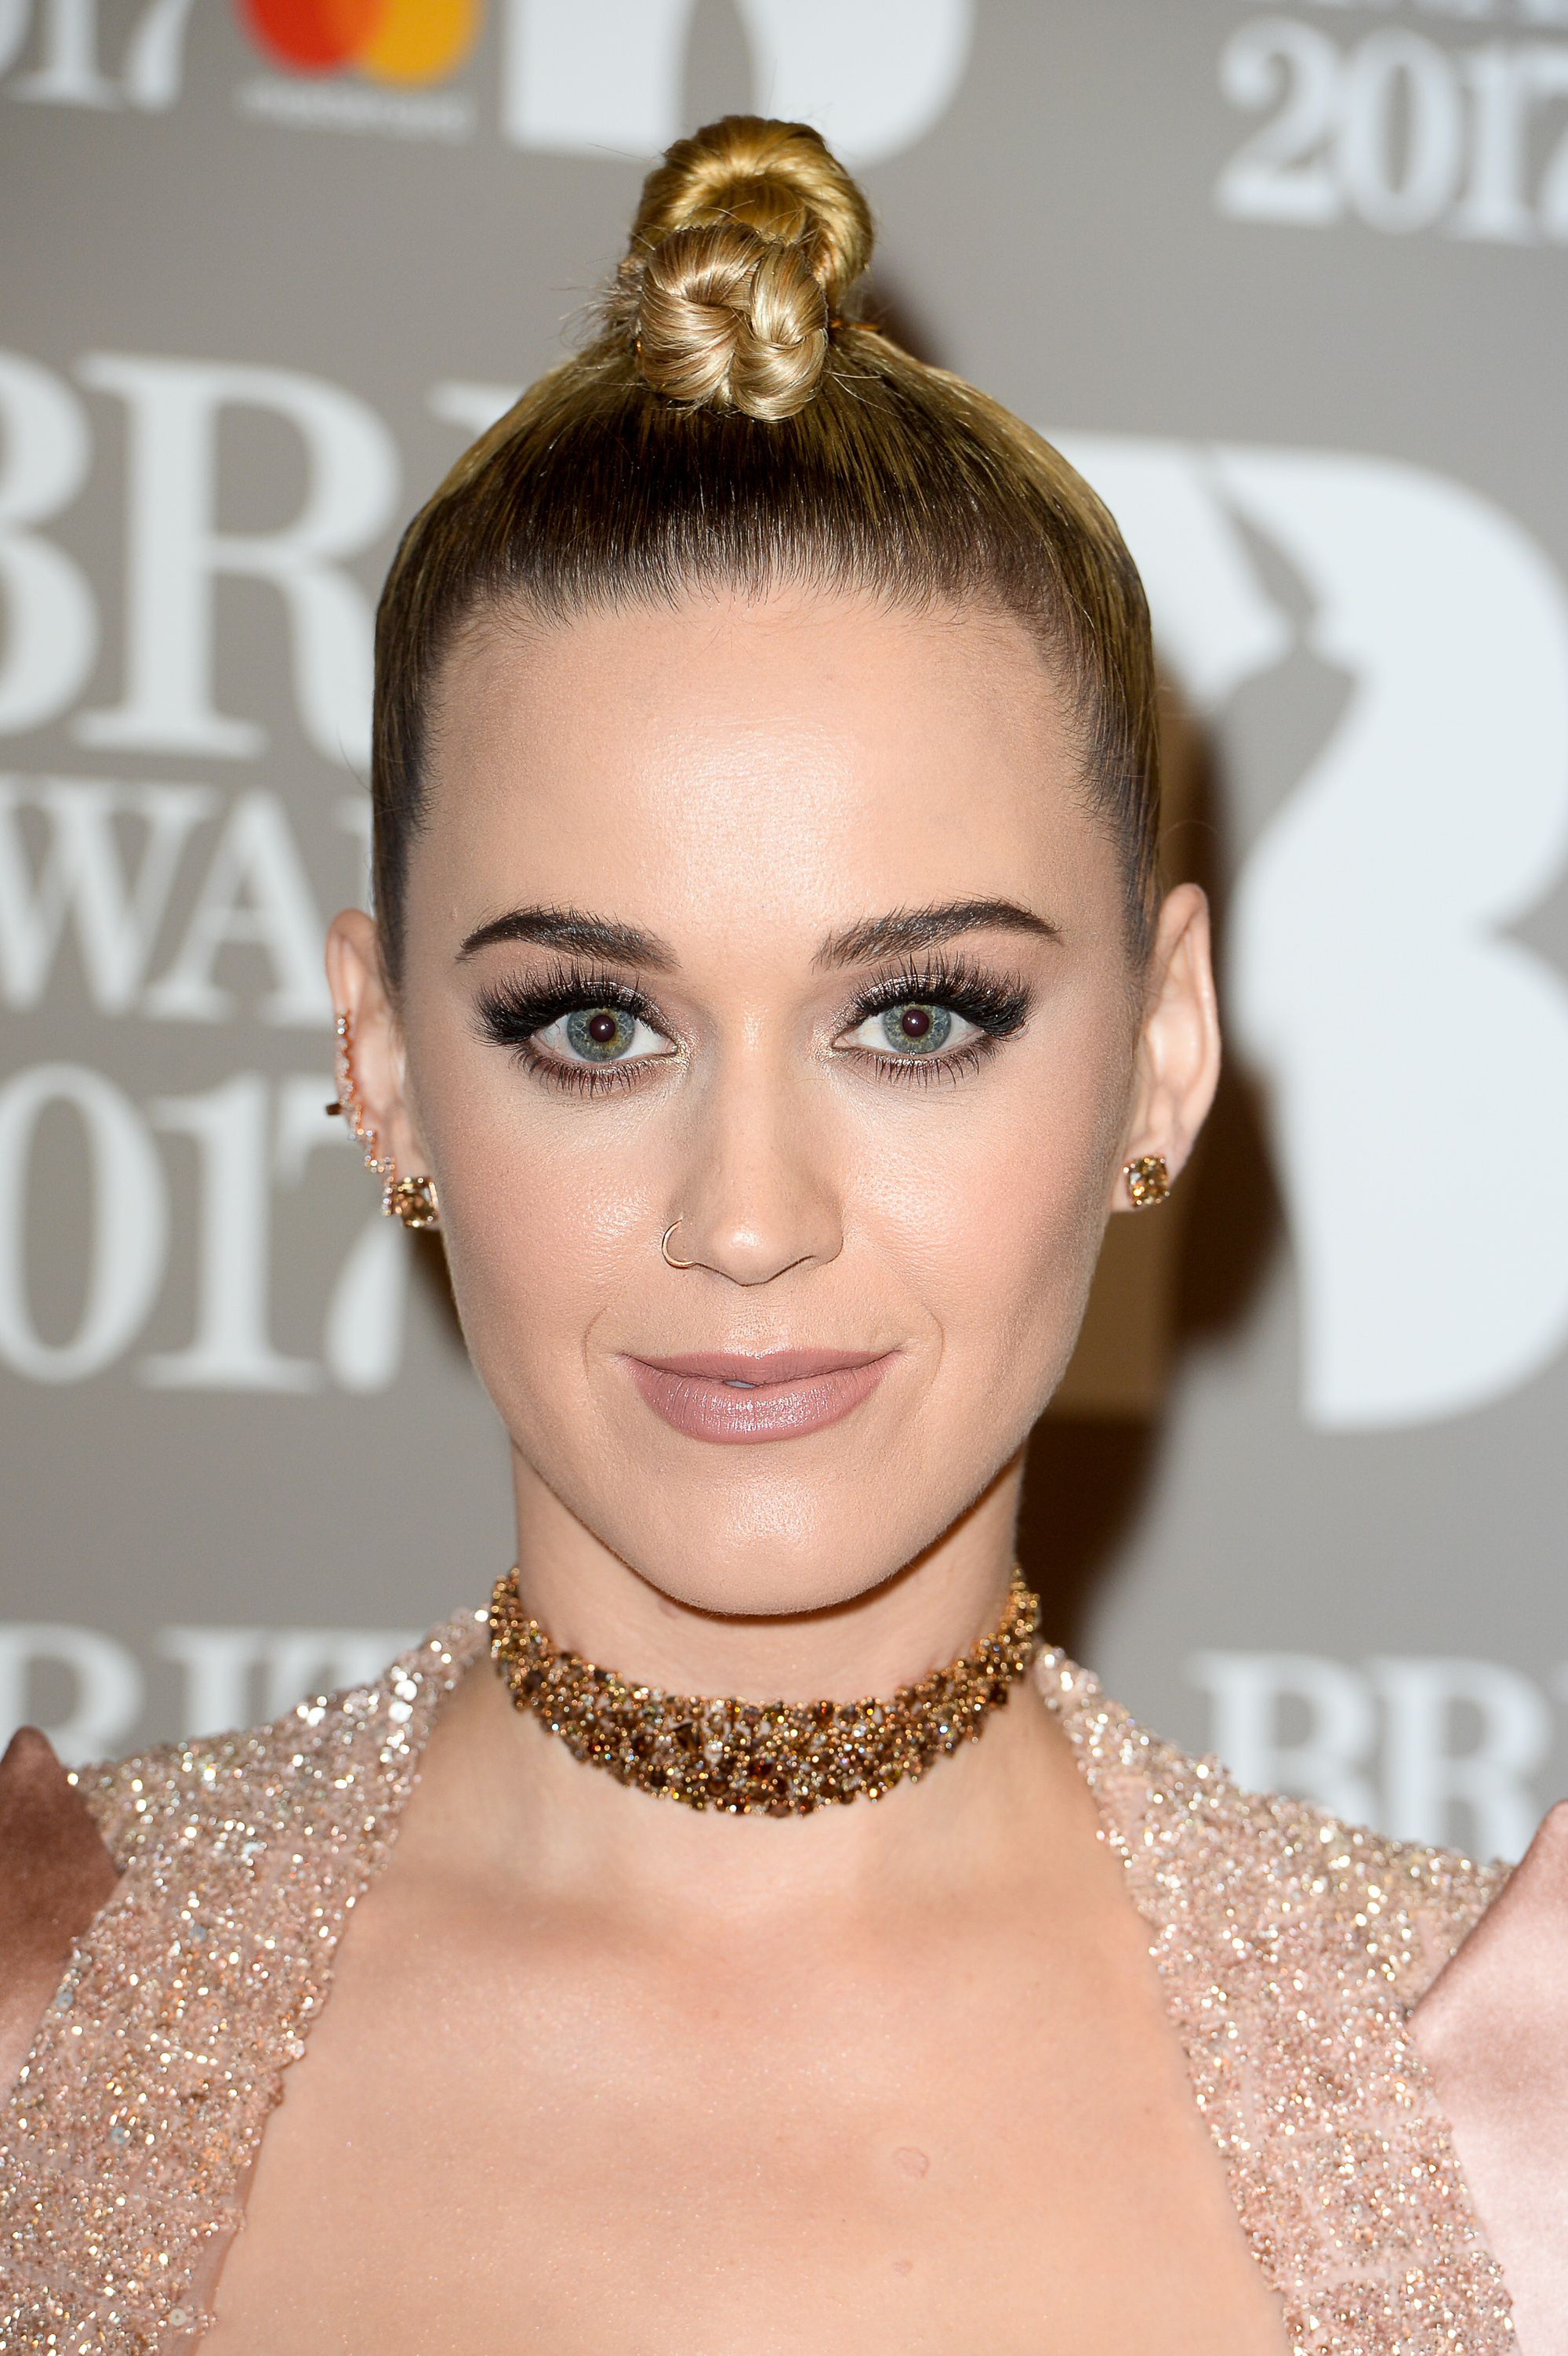 Katy Perry New Haircut Pixie Blonde Miley Cyrus Similar